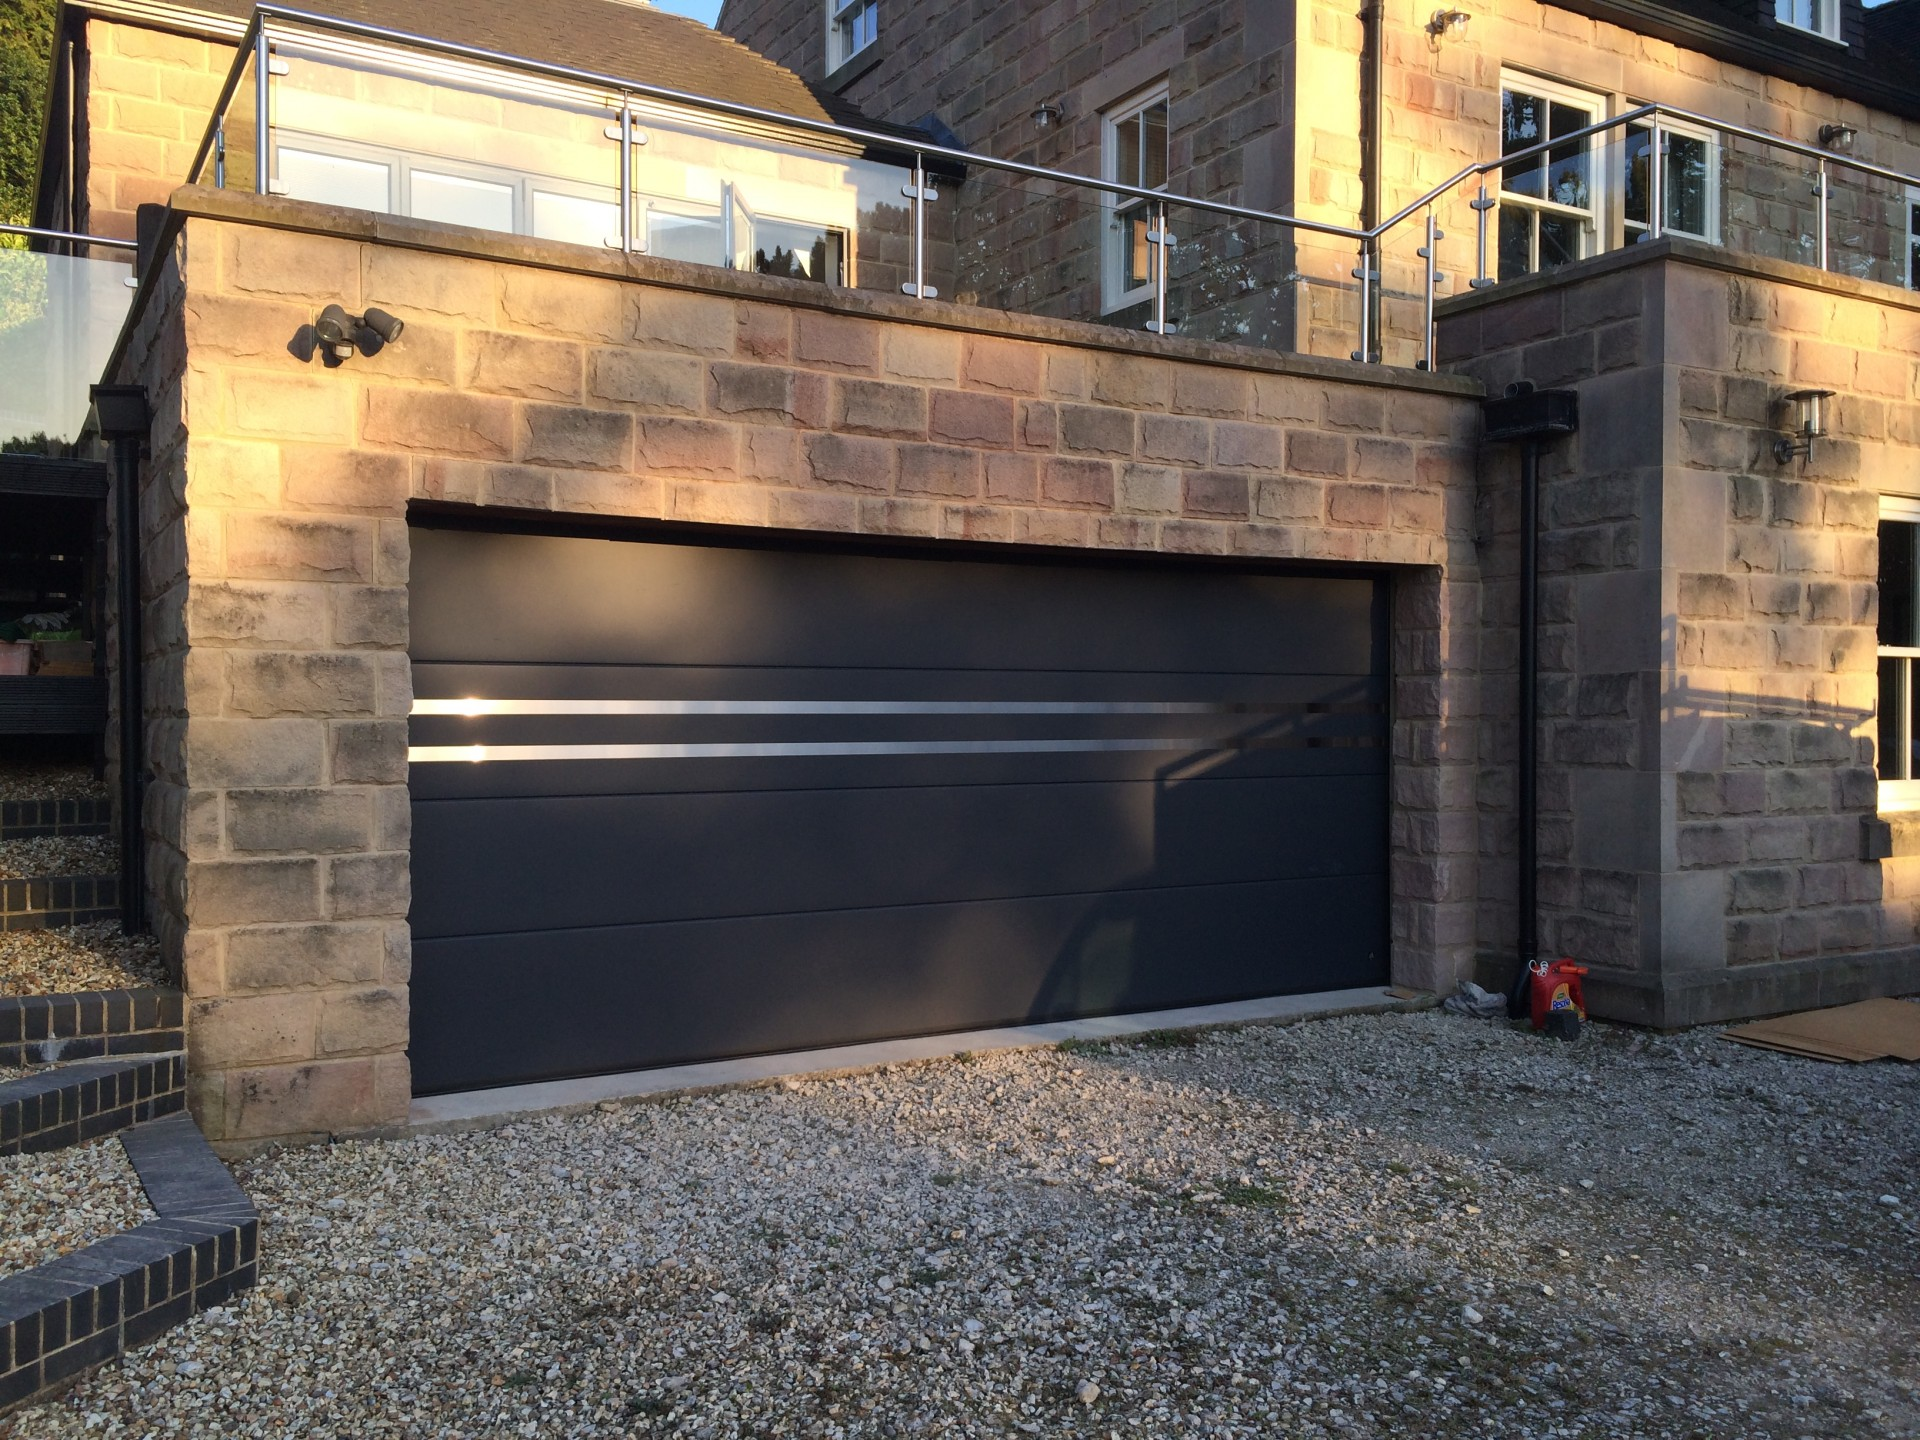 1440 #B47B17  Sectional Garage Door In Anthracite Grey With A Stainless Steel Design pic Sectional Steel Garage Doors 35911920